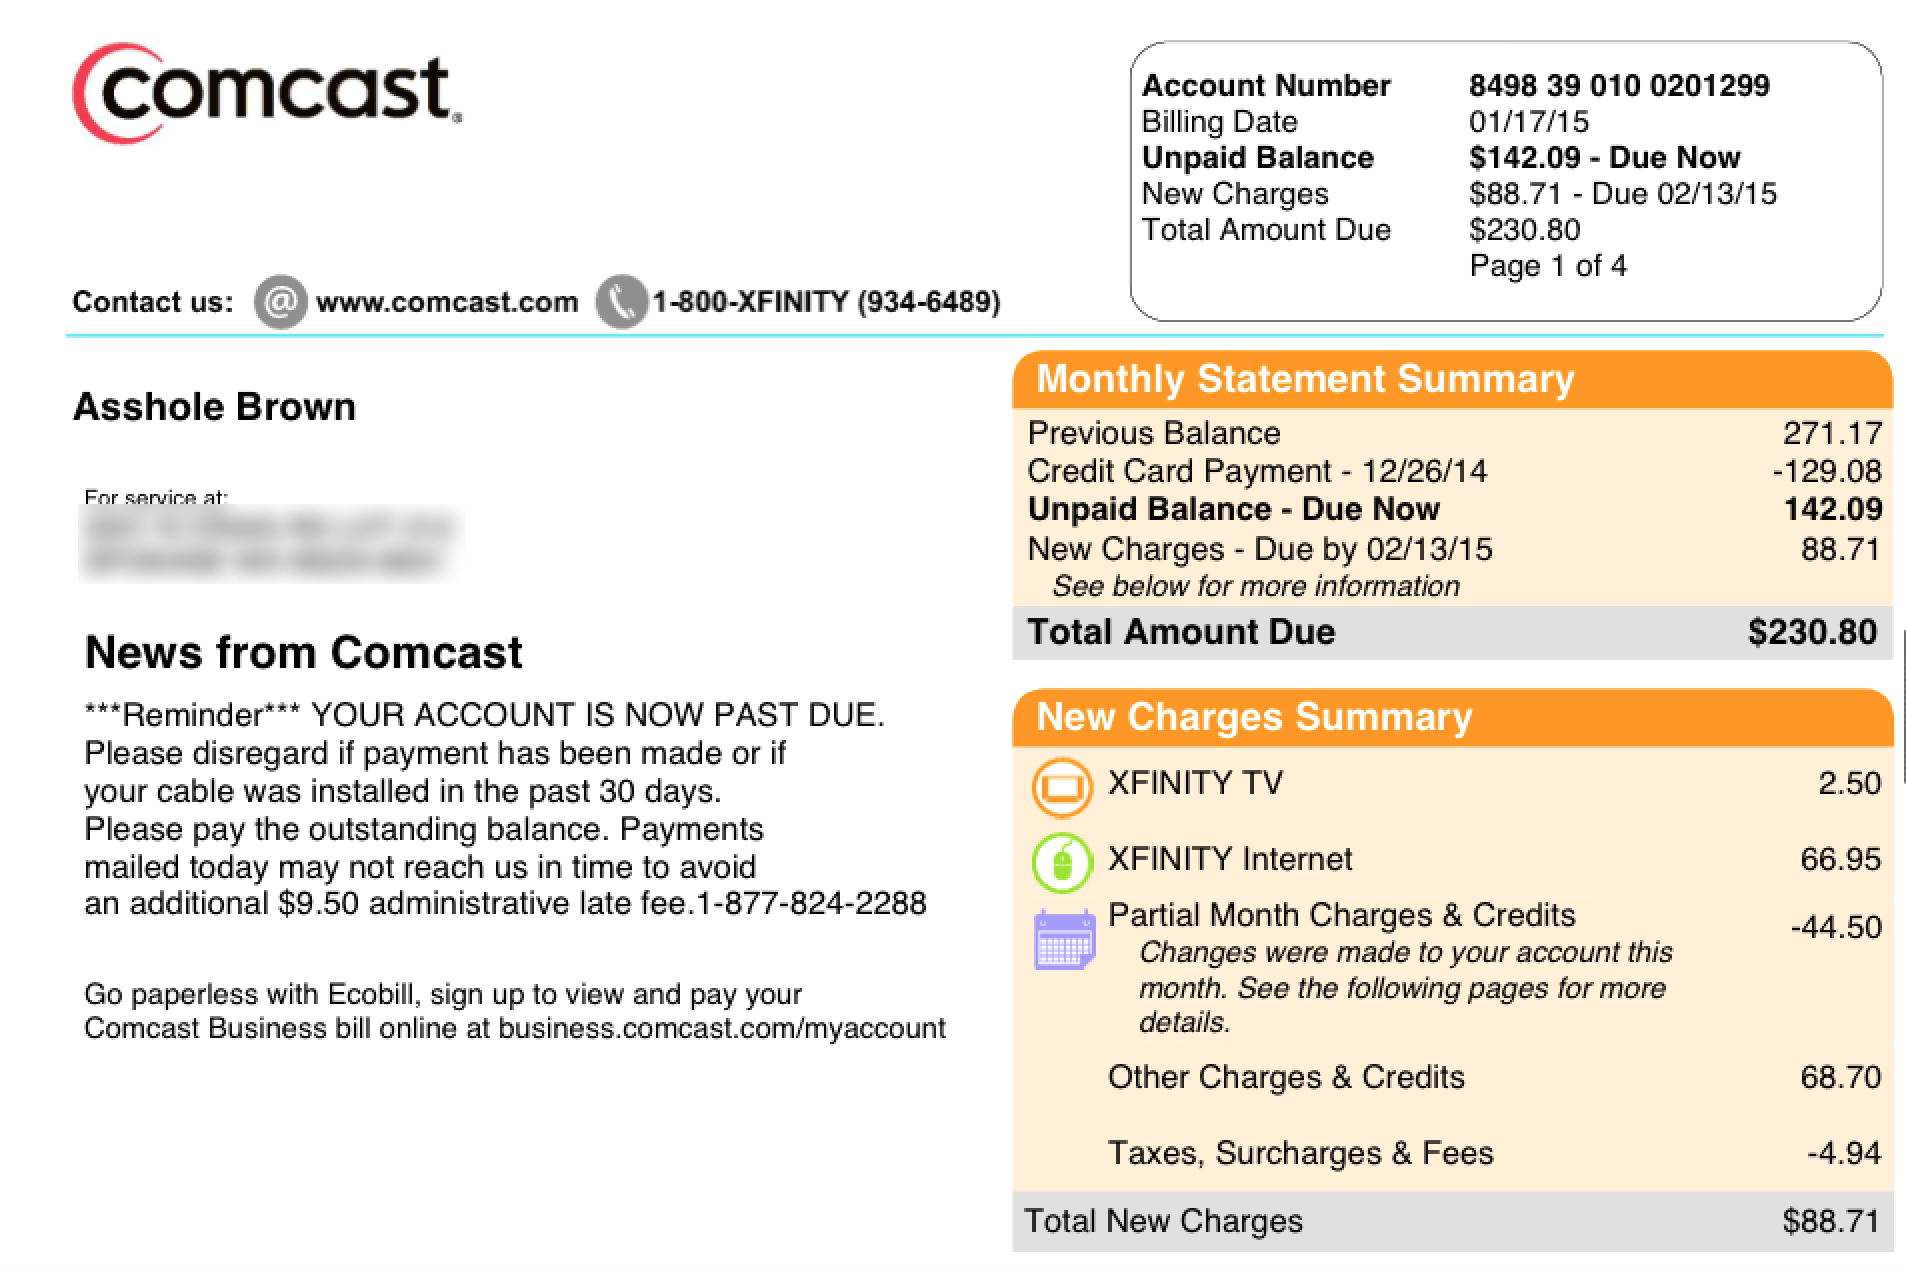 Comcast support rtp - Comcast ahole bill